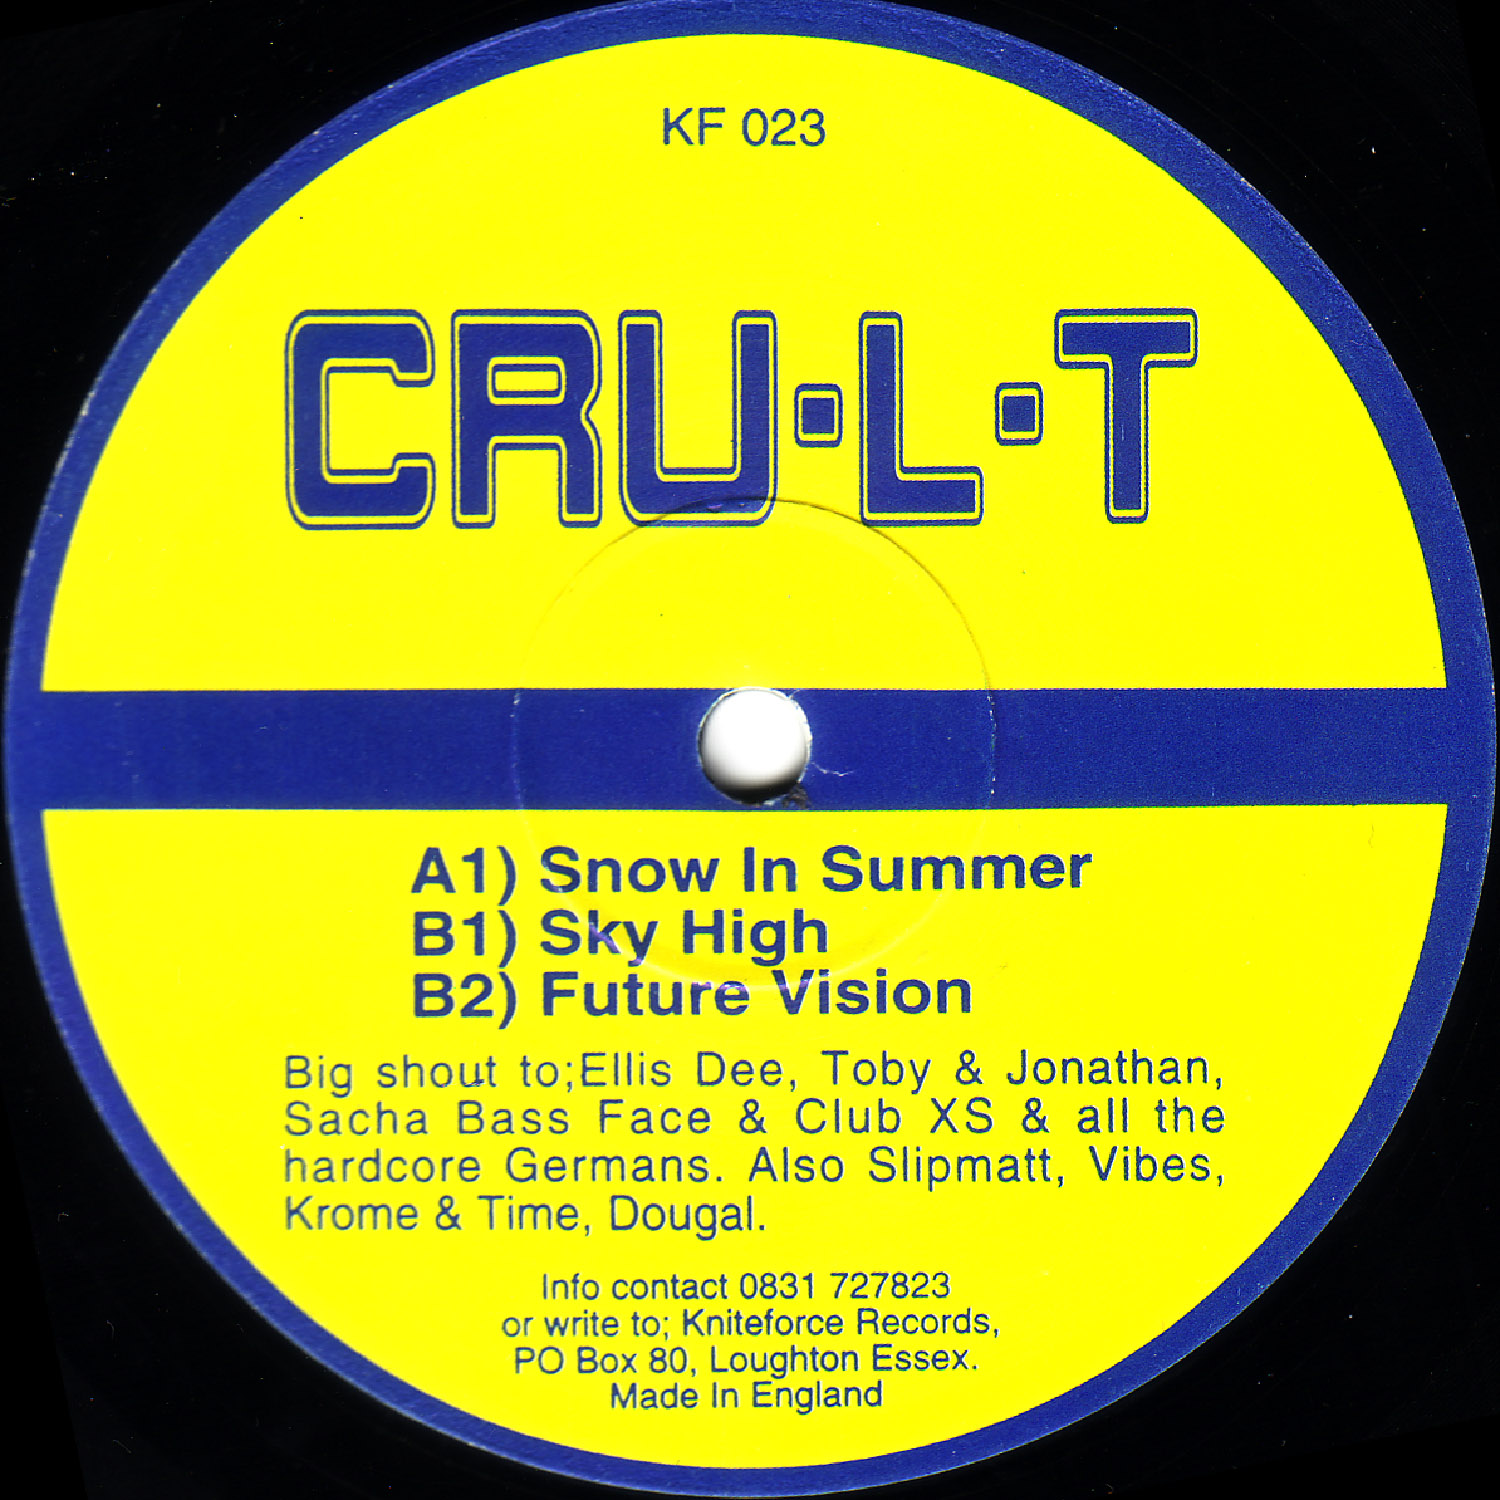 [KF023] Cru-l-t - Snow In Summer EP (Digital Only)